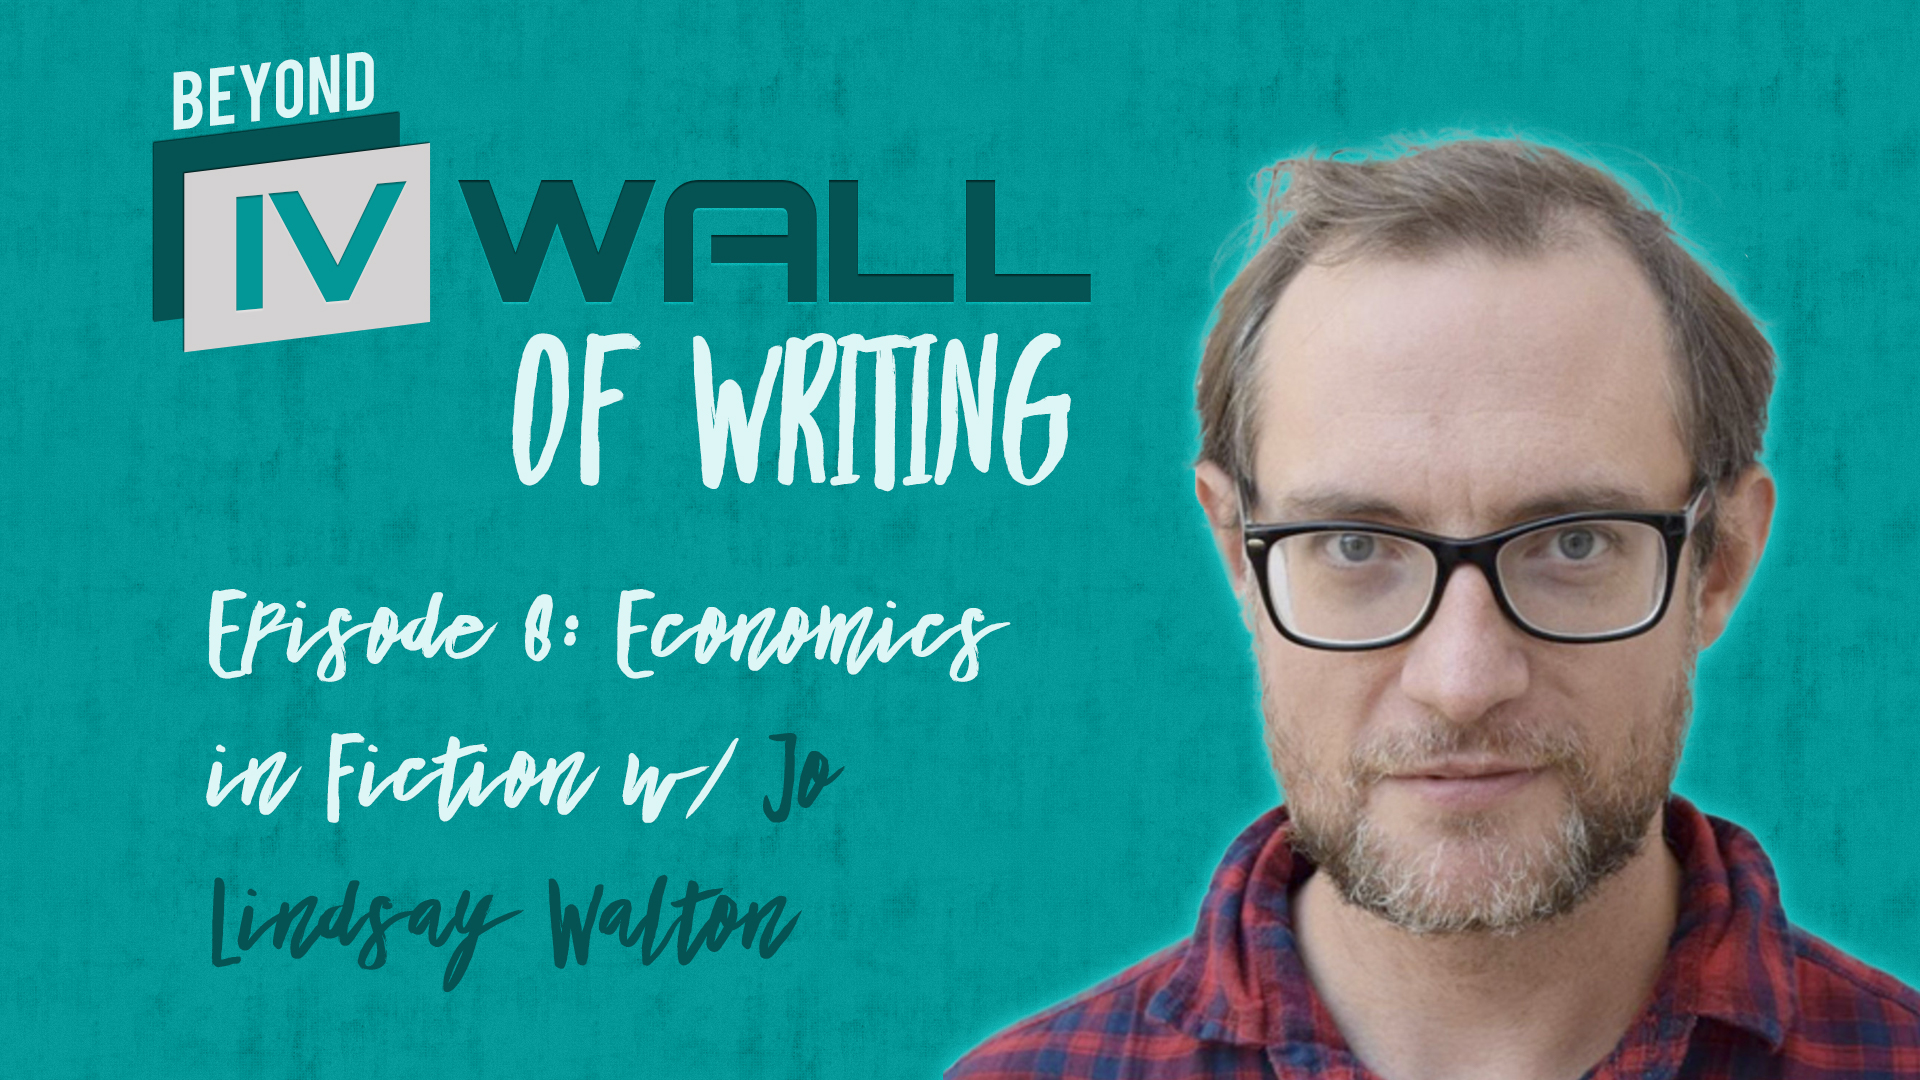 Beyond the IVWall of Writing: Episode 8- Economics in Fiction with Jo Lindsay Walton Part 1